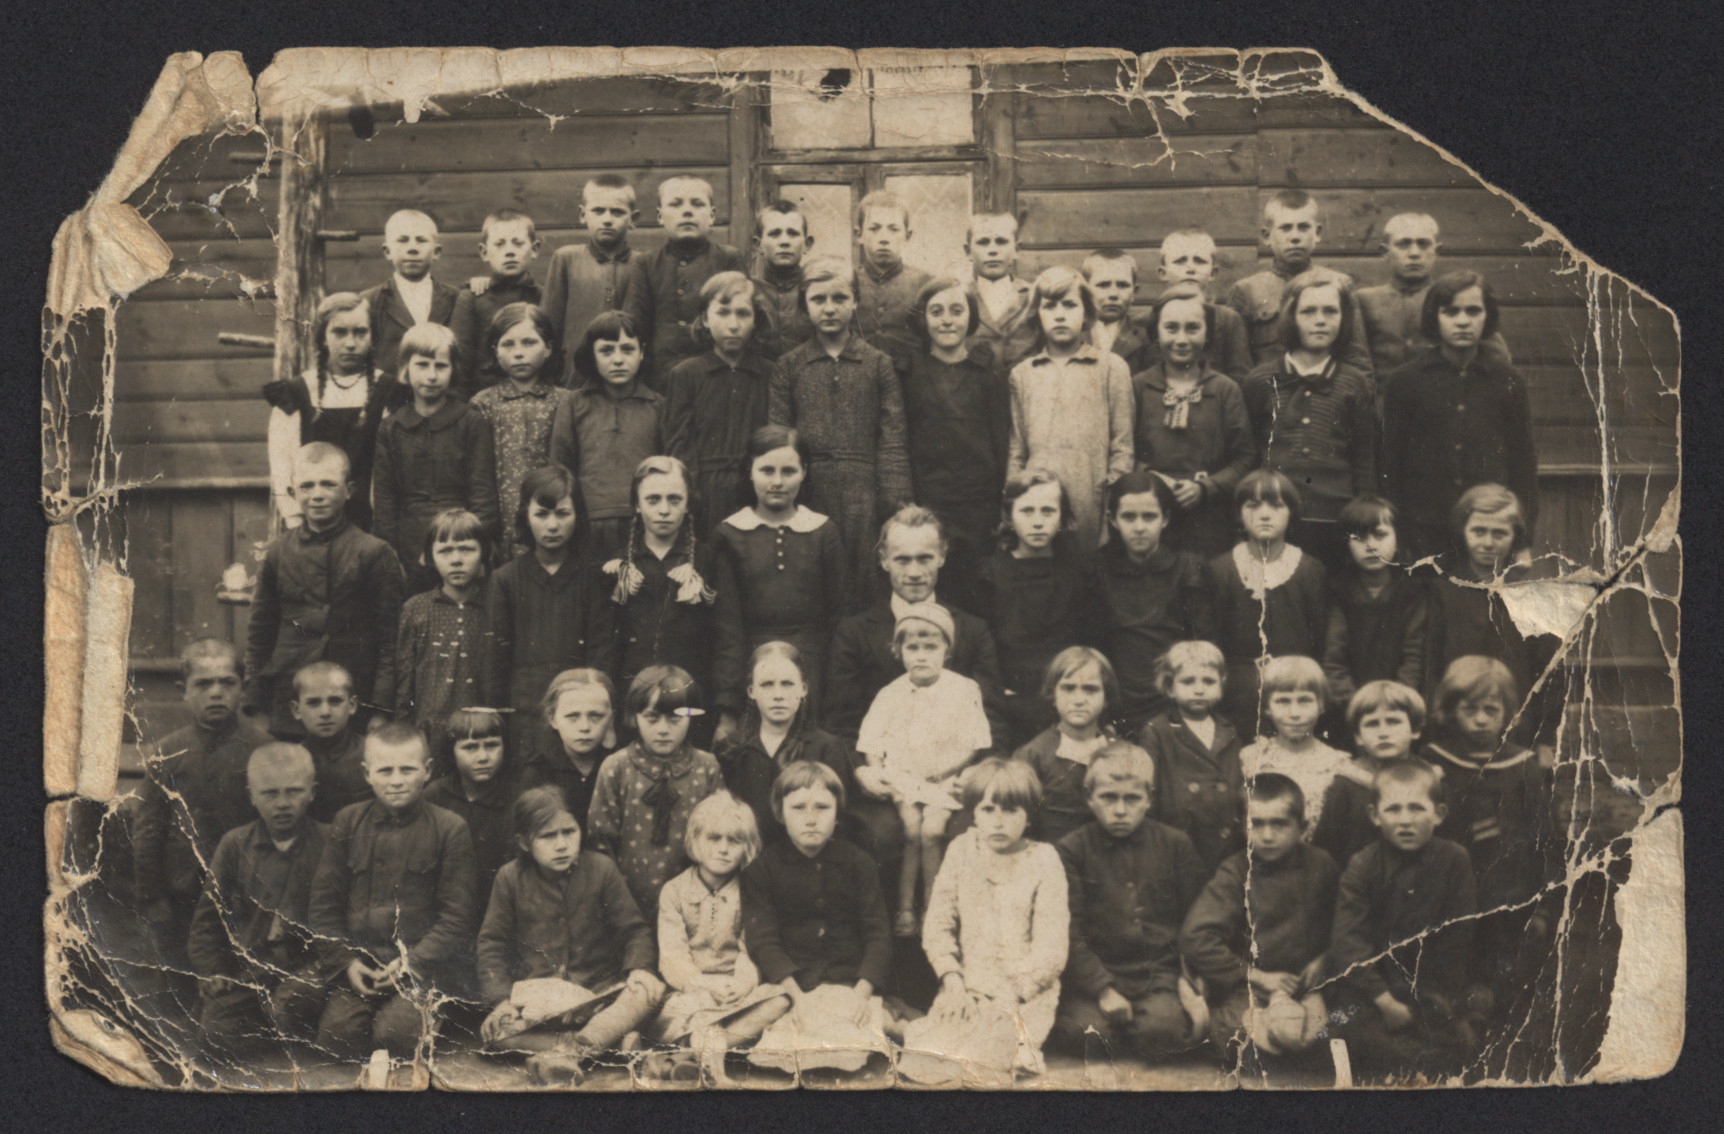 Group portrait of school children in Sawin, Poland.  Malka Rajzl Zytnik is pictured fourth from left in second row from the top.